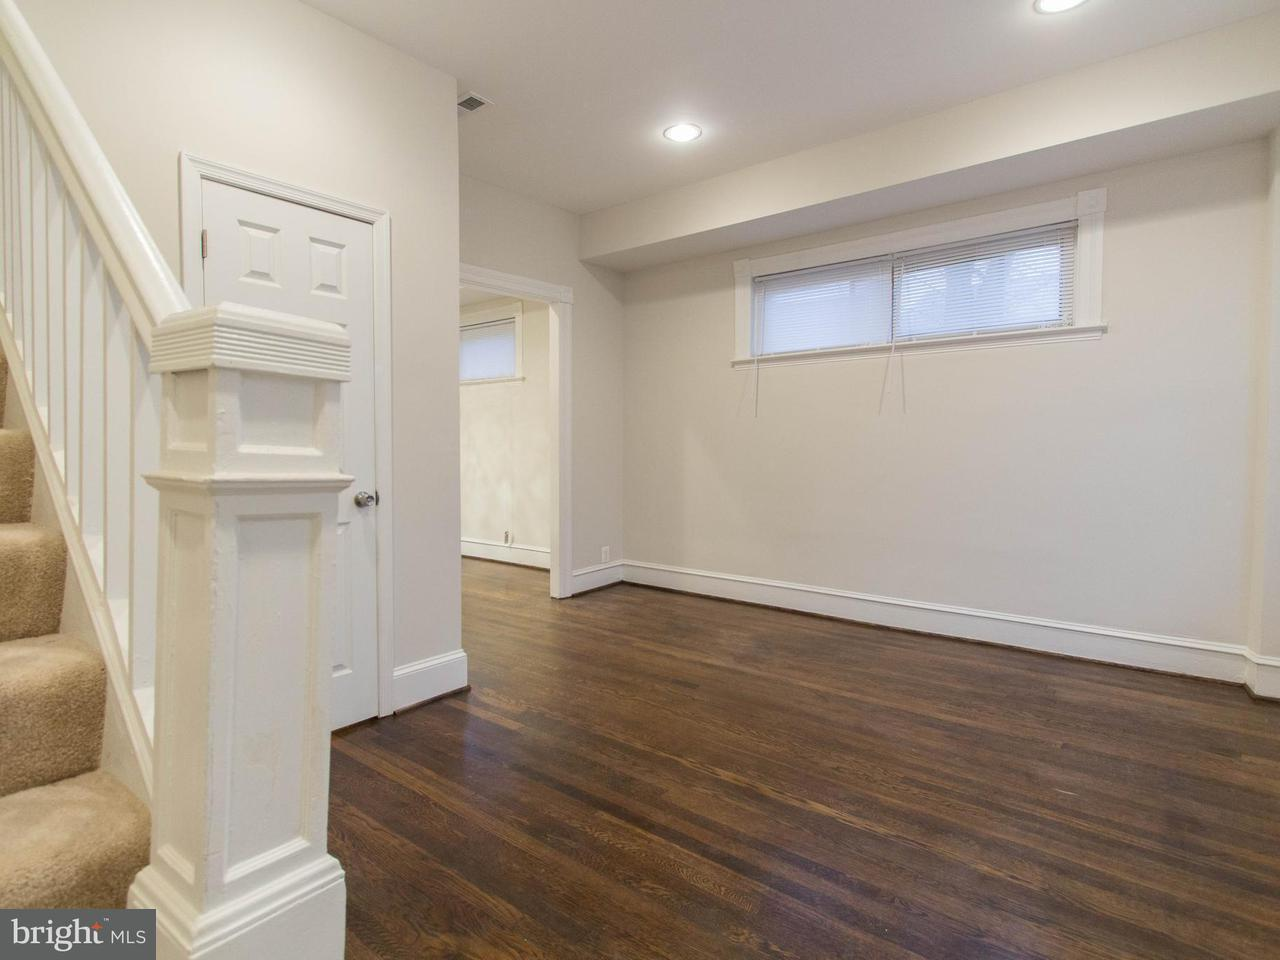 Additional photo for property listing at 4941 Blaine St NE  Washington, District Of Columbia 20019 United States